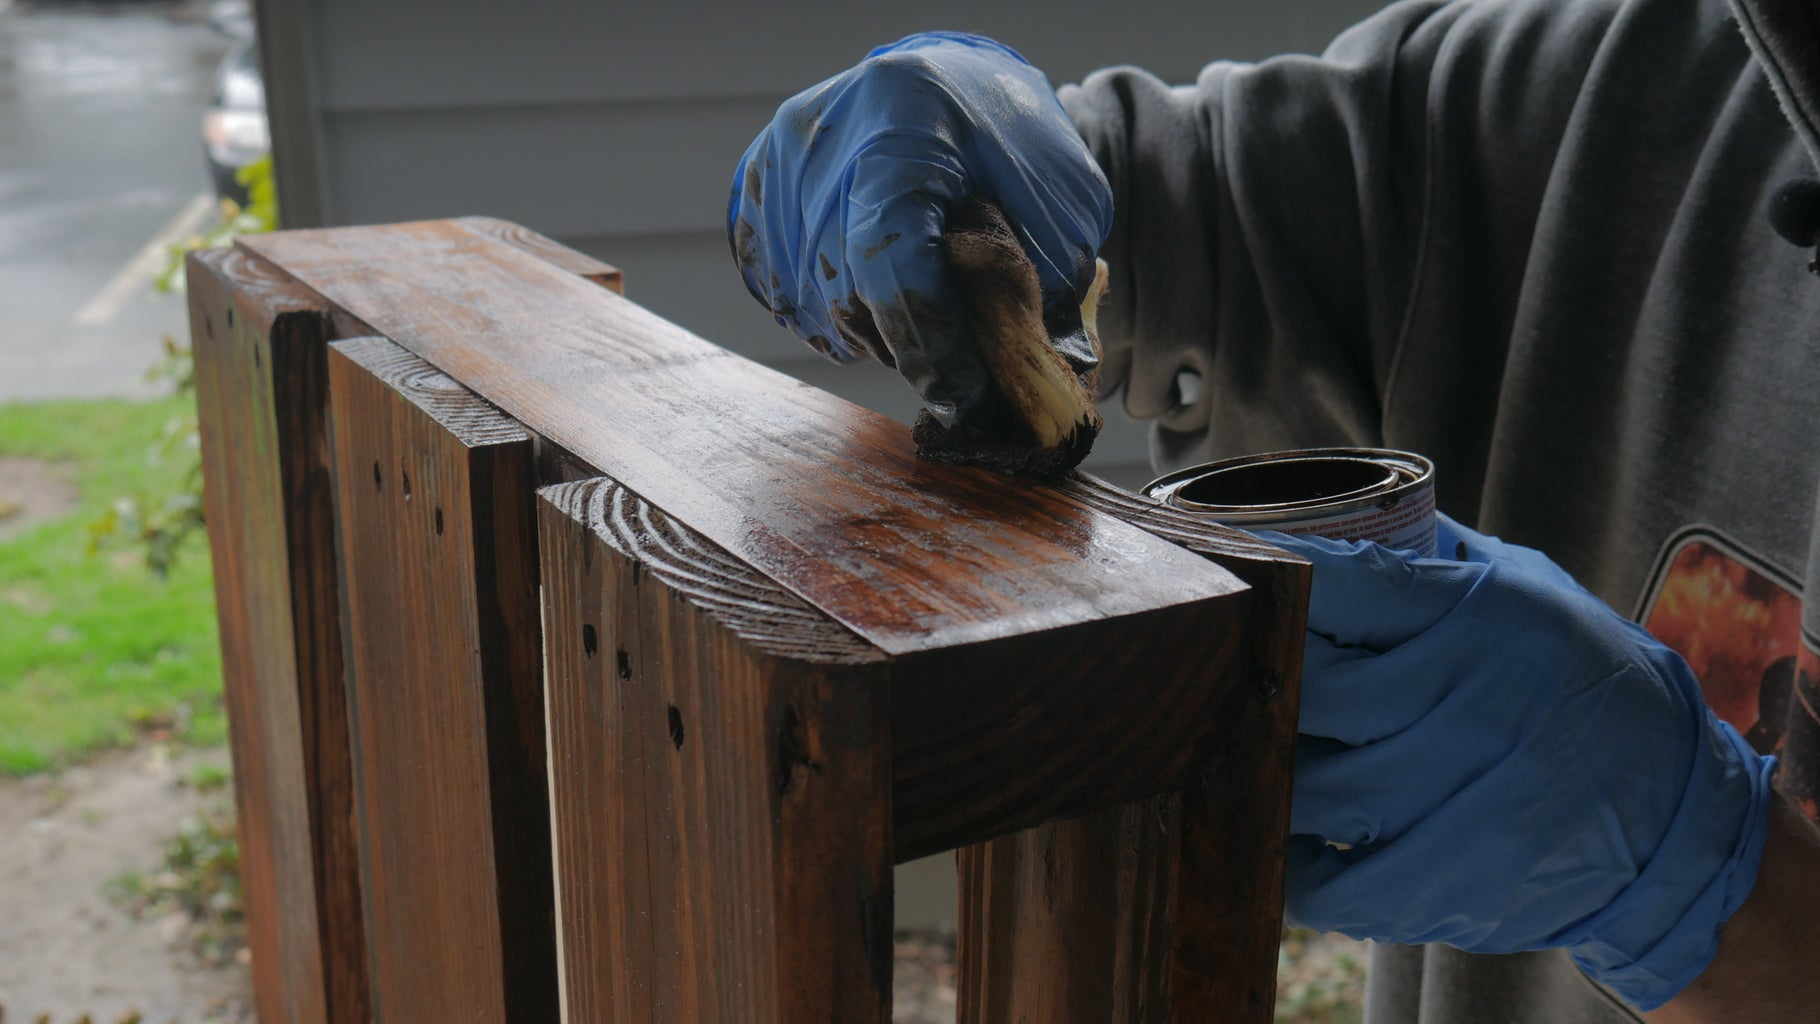 Staining the Table